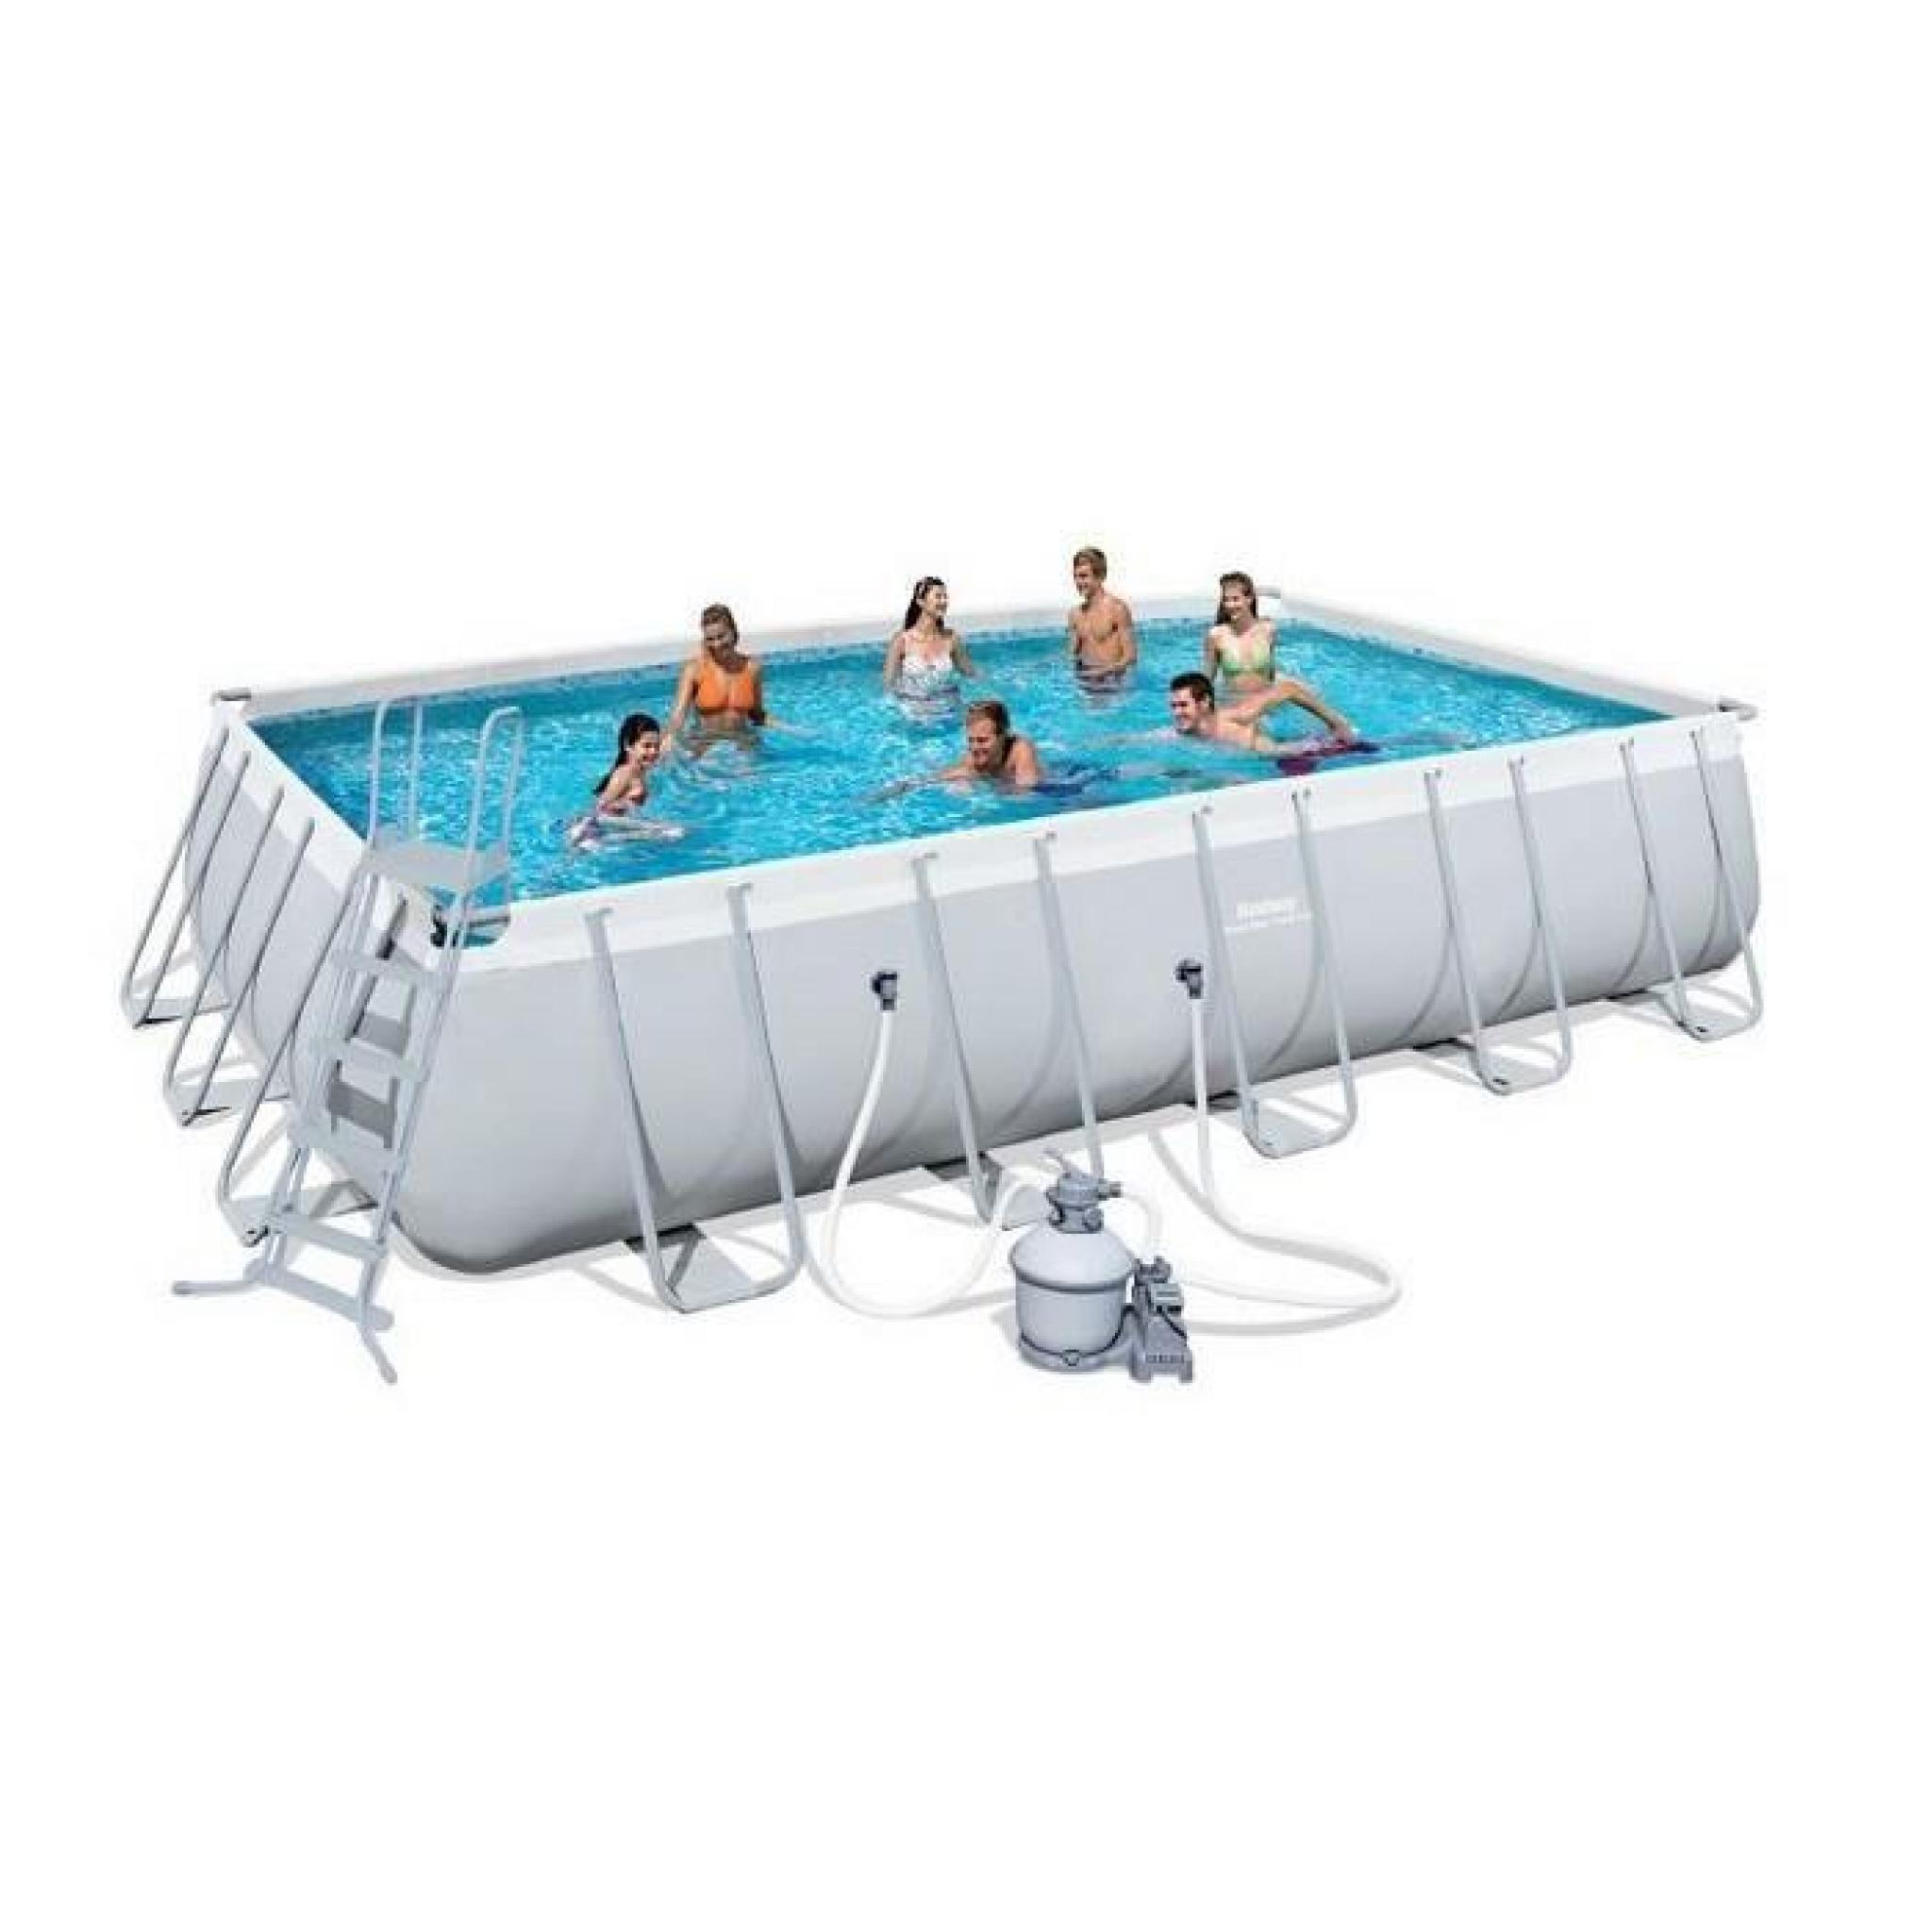 Bestway Piscine Tubulaire Rectangulaire 6.71X3.66X1.32 M Filtre À Sable destiné Piscine Tubulaire Carrée